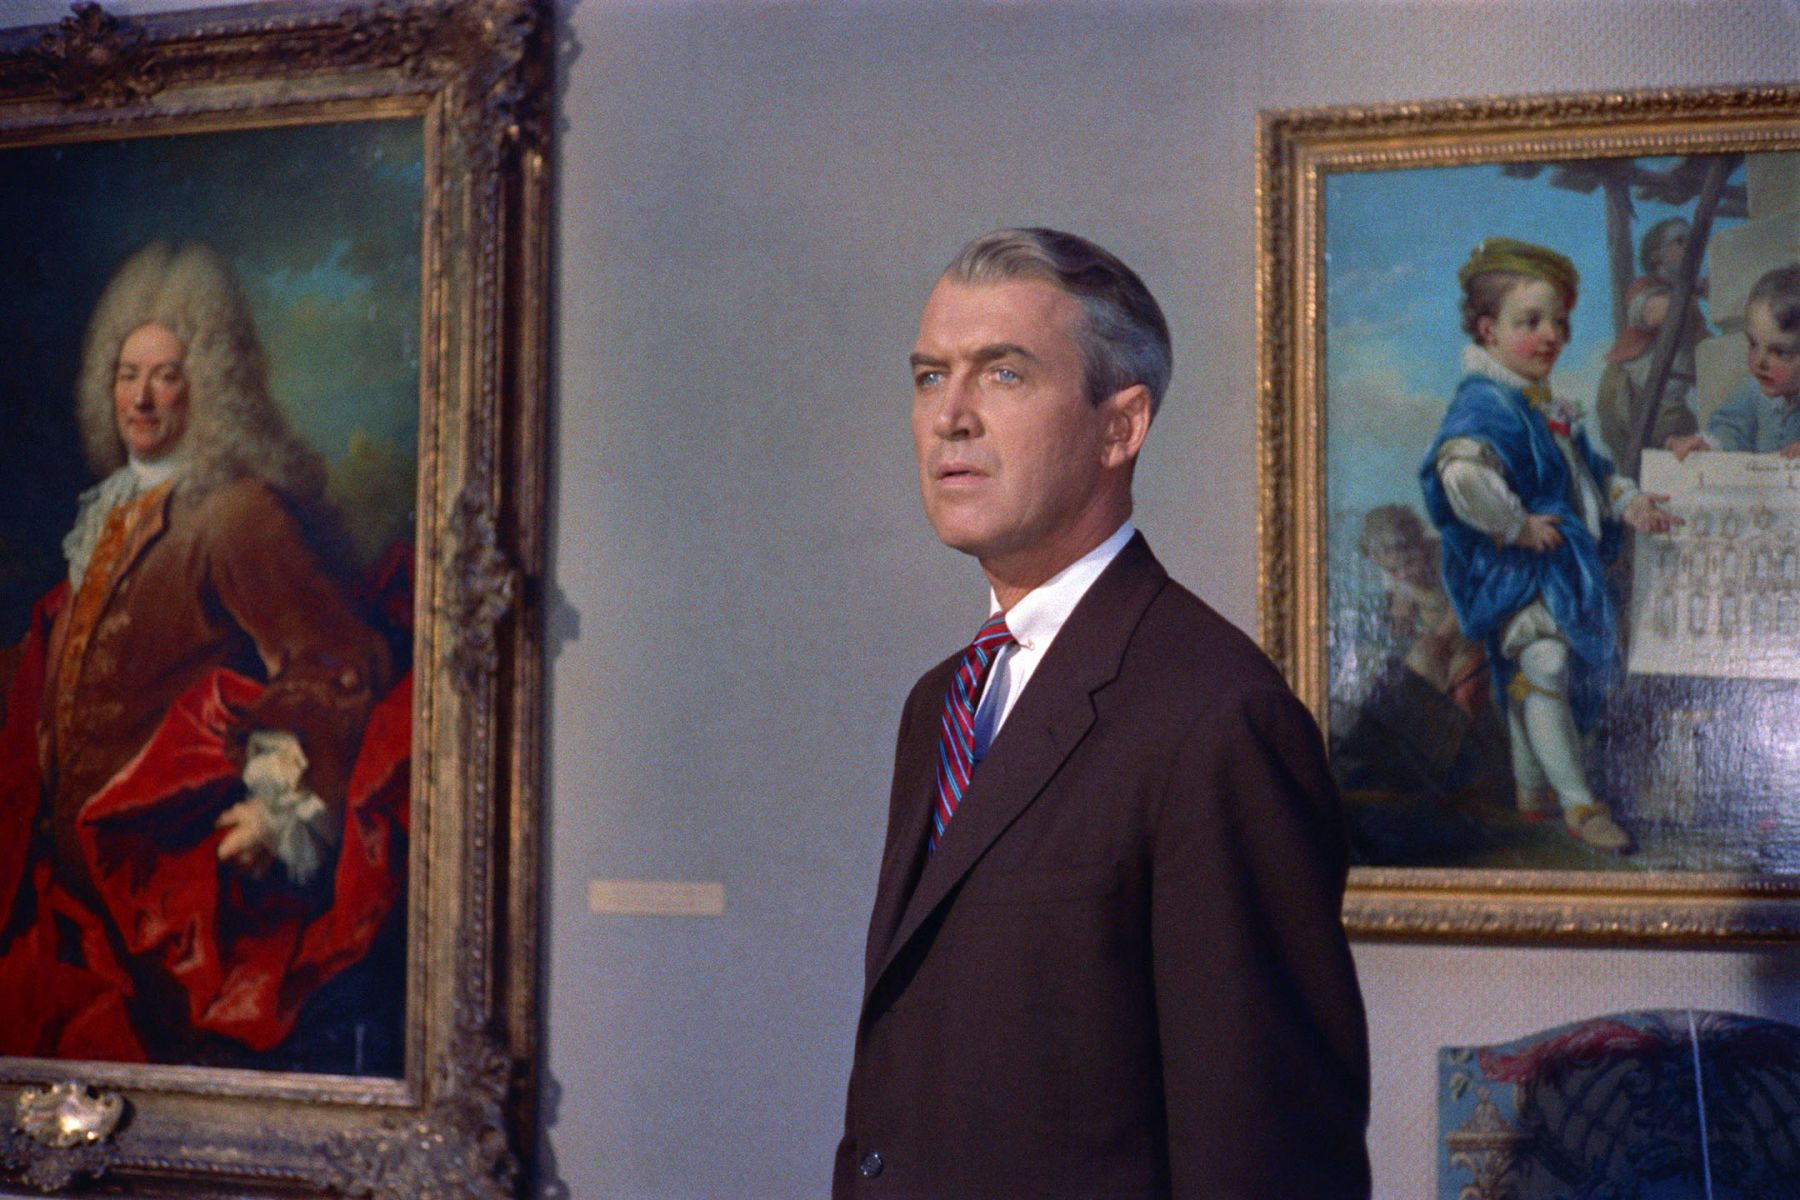 man in a suit stands before two classical paintings